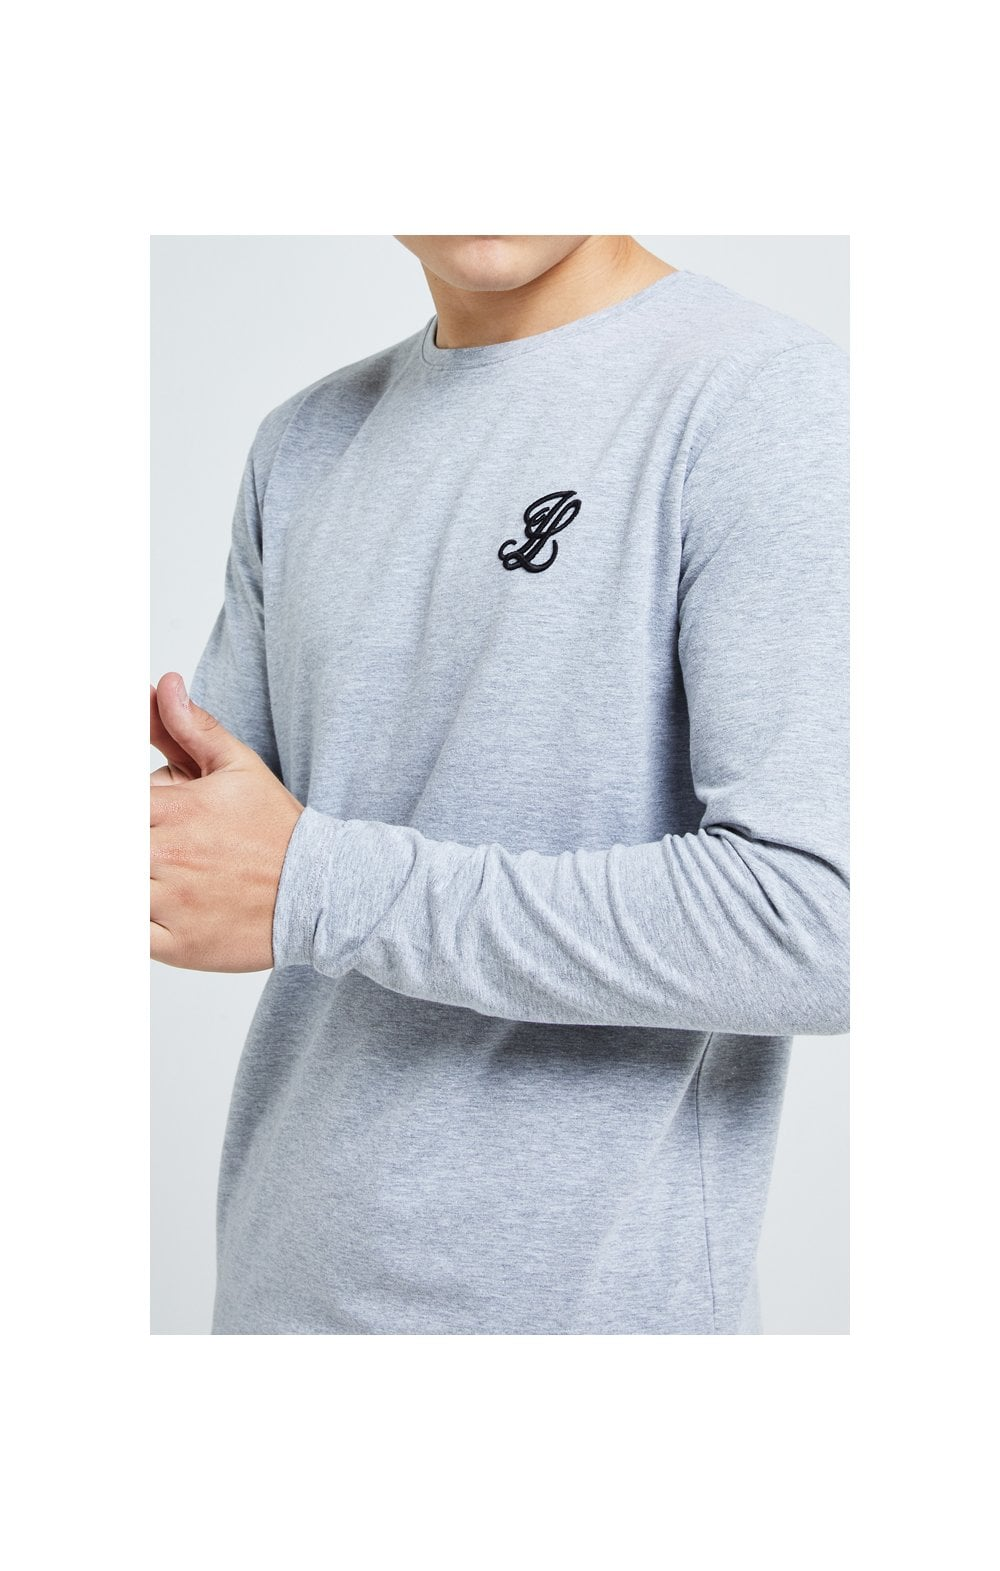 Illusive London L/S Core Tee - Grey Marl (2)